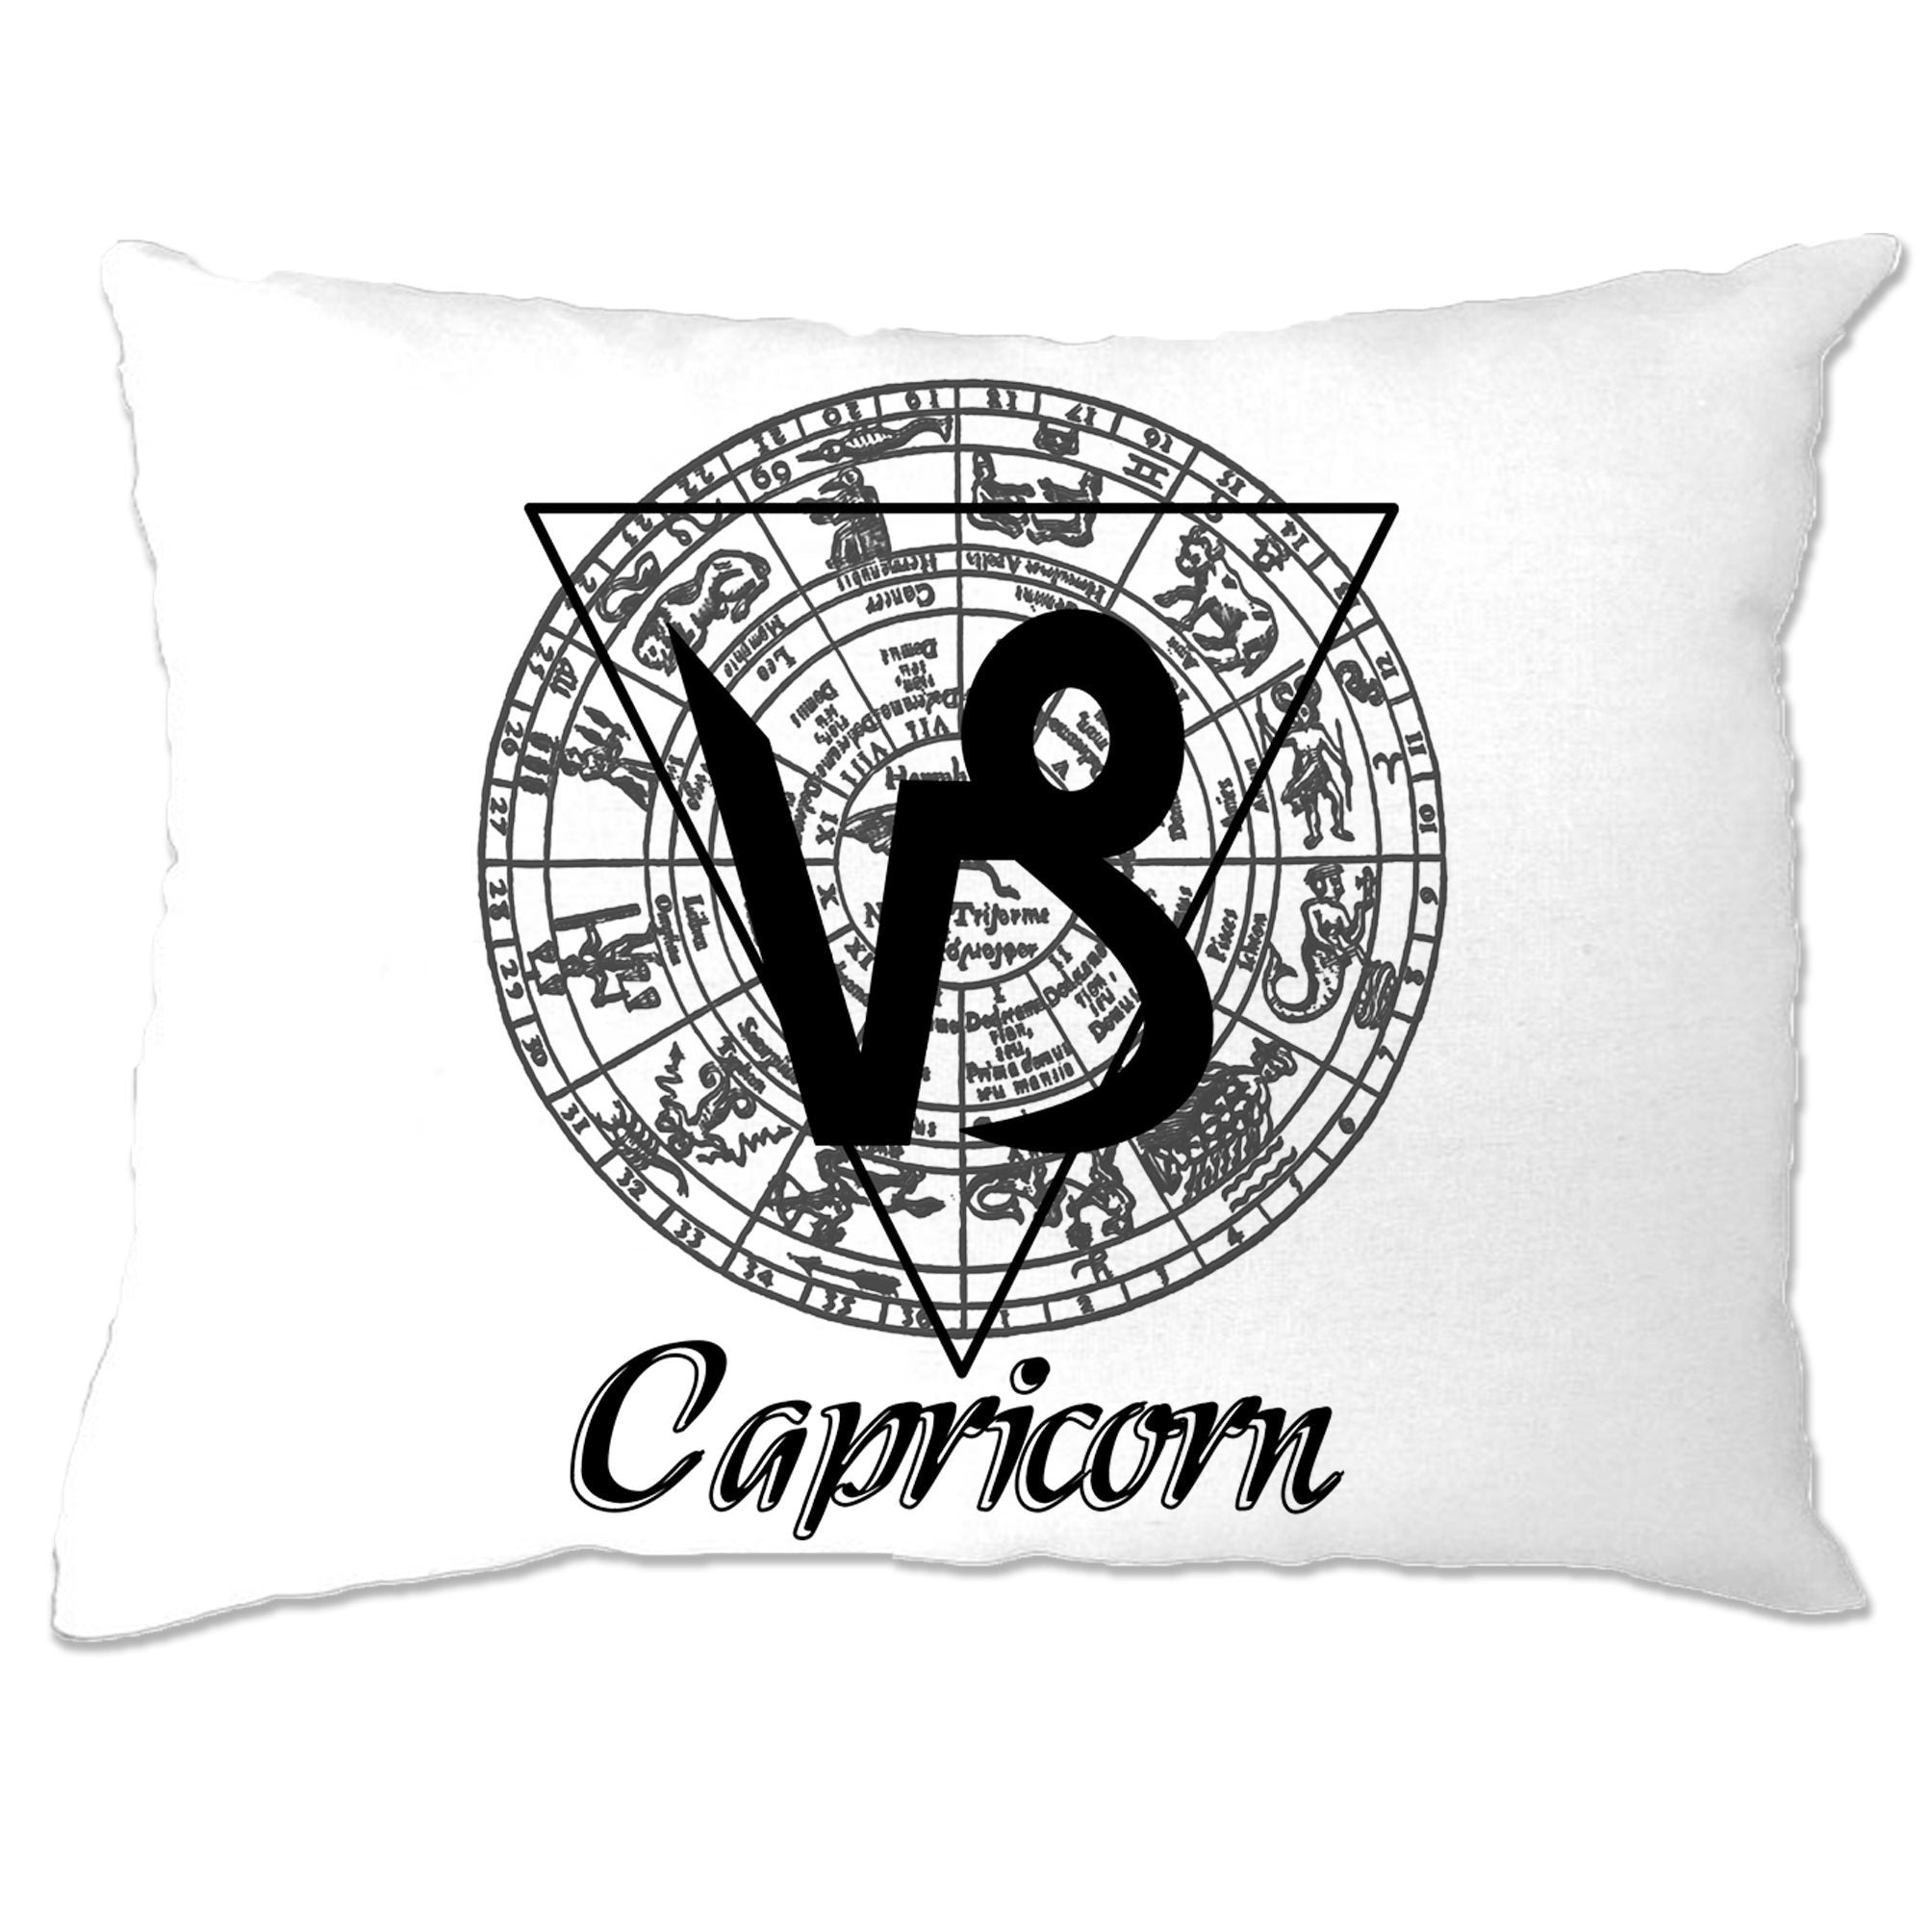 Horoscope Pillow Case Capricorn Zodiac Star Sign Birthday